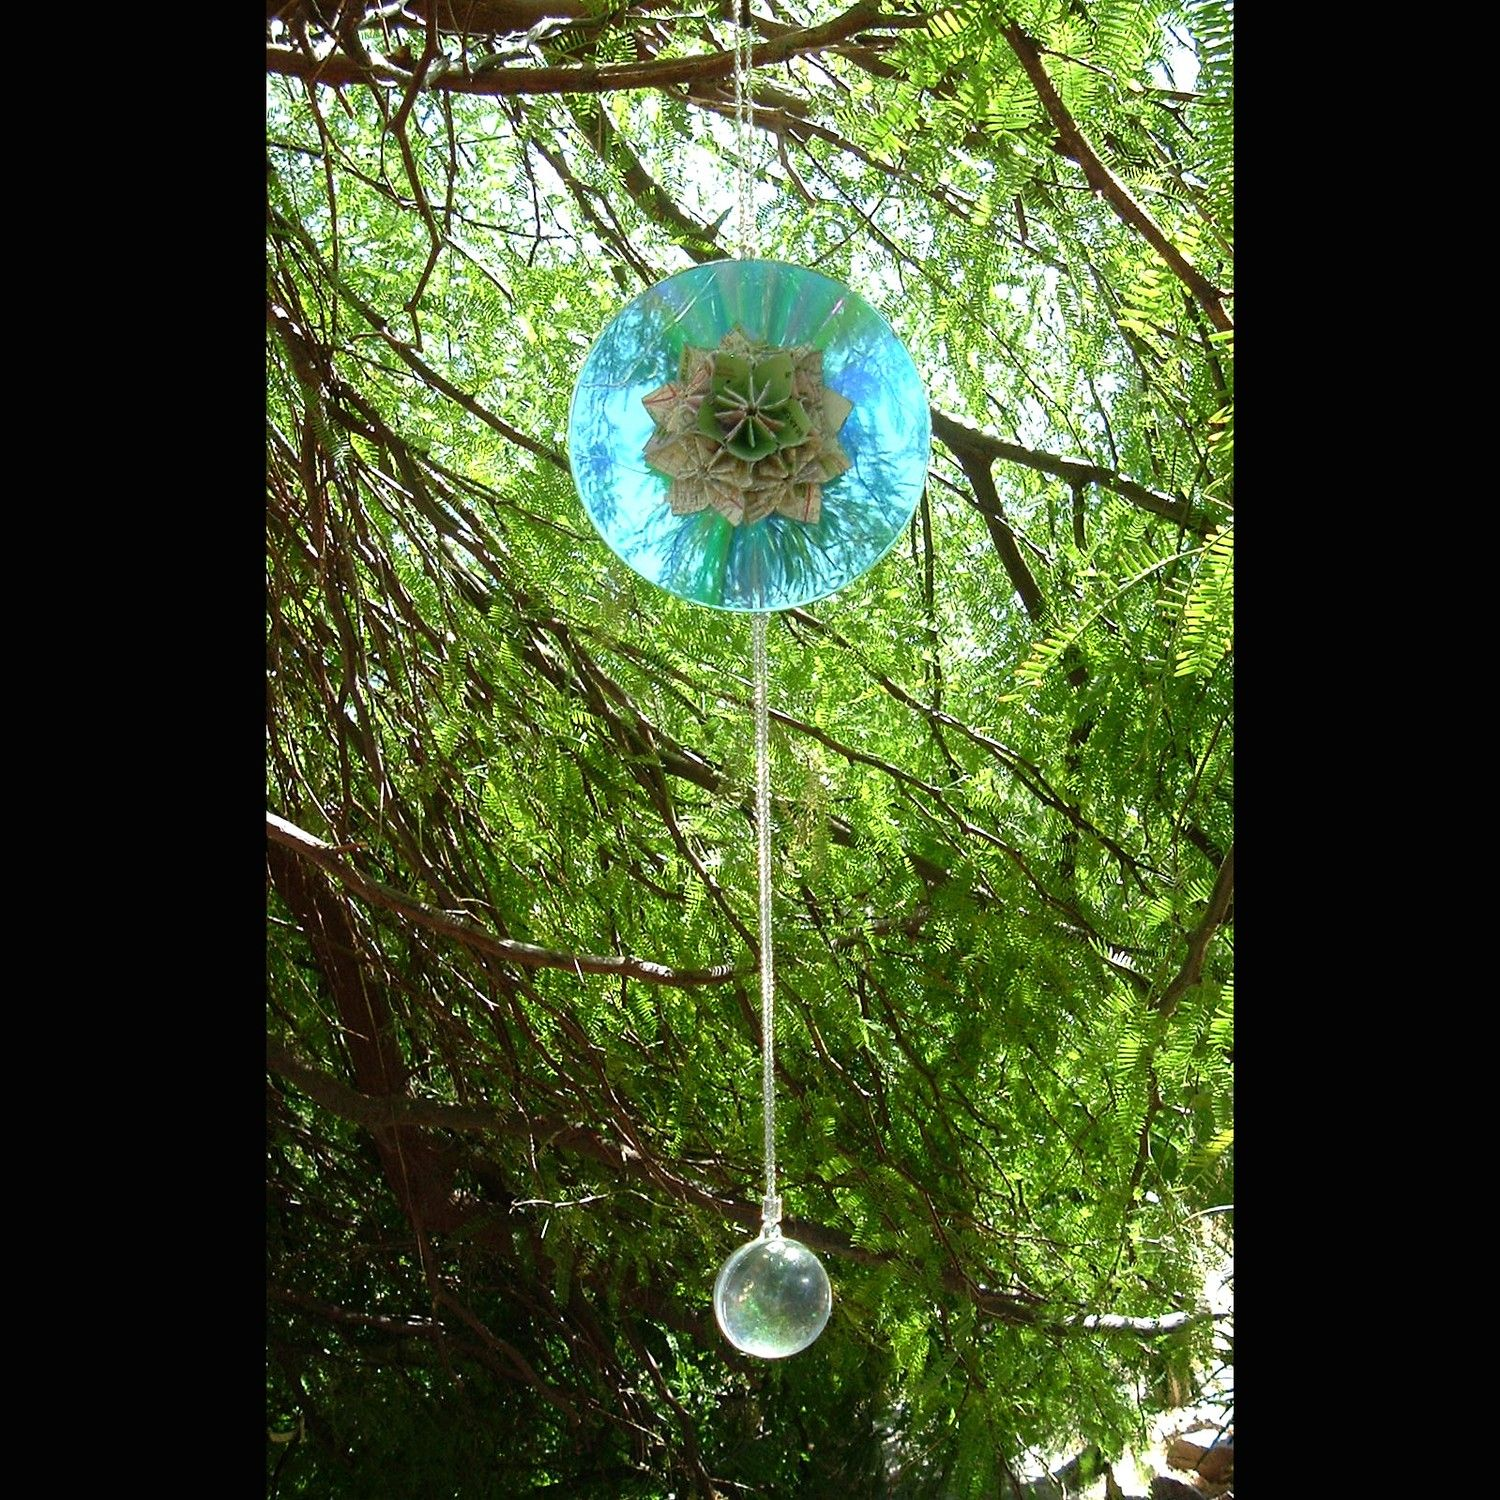 Cool, Decorate Old CDs And Put Them Out In The Garden To Keep The Birds